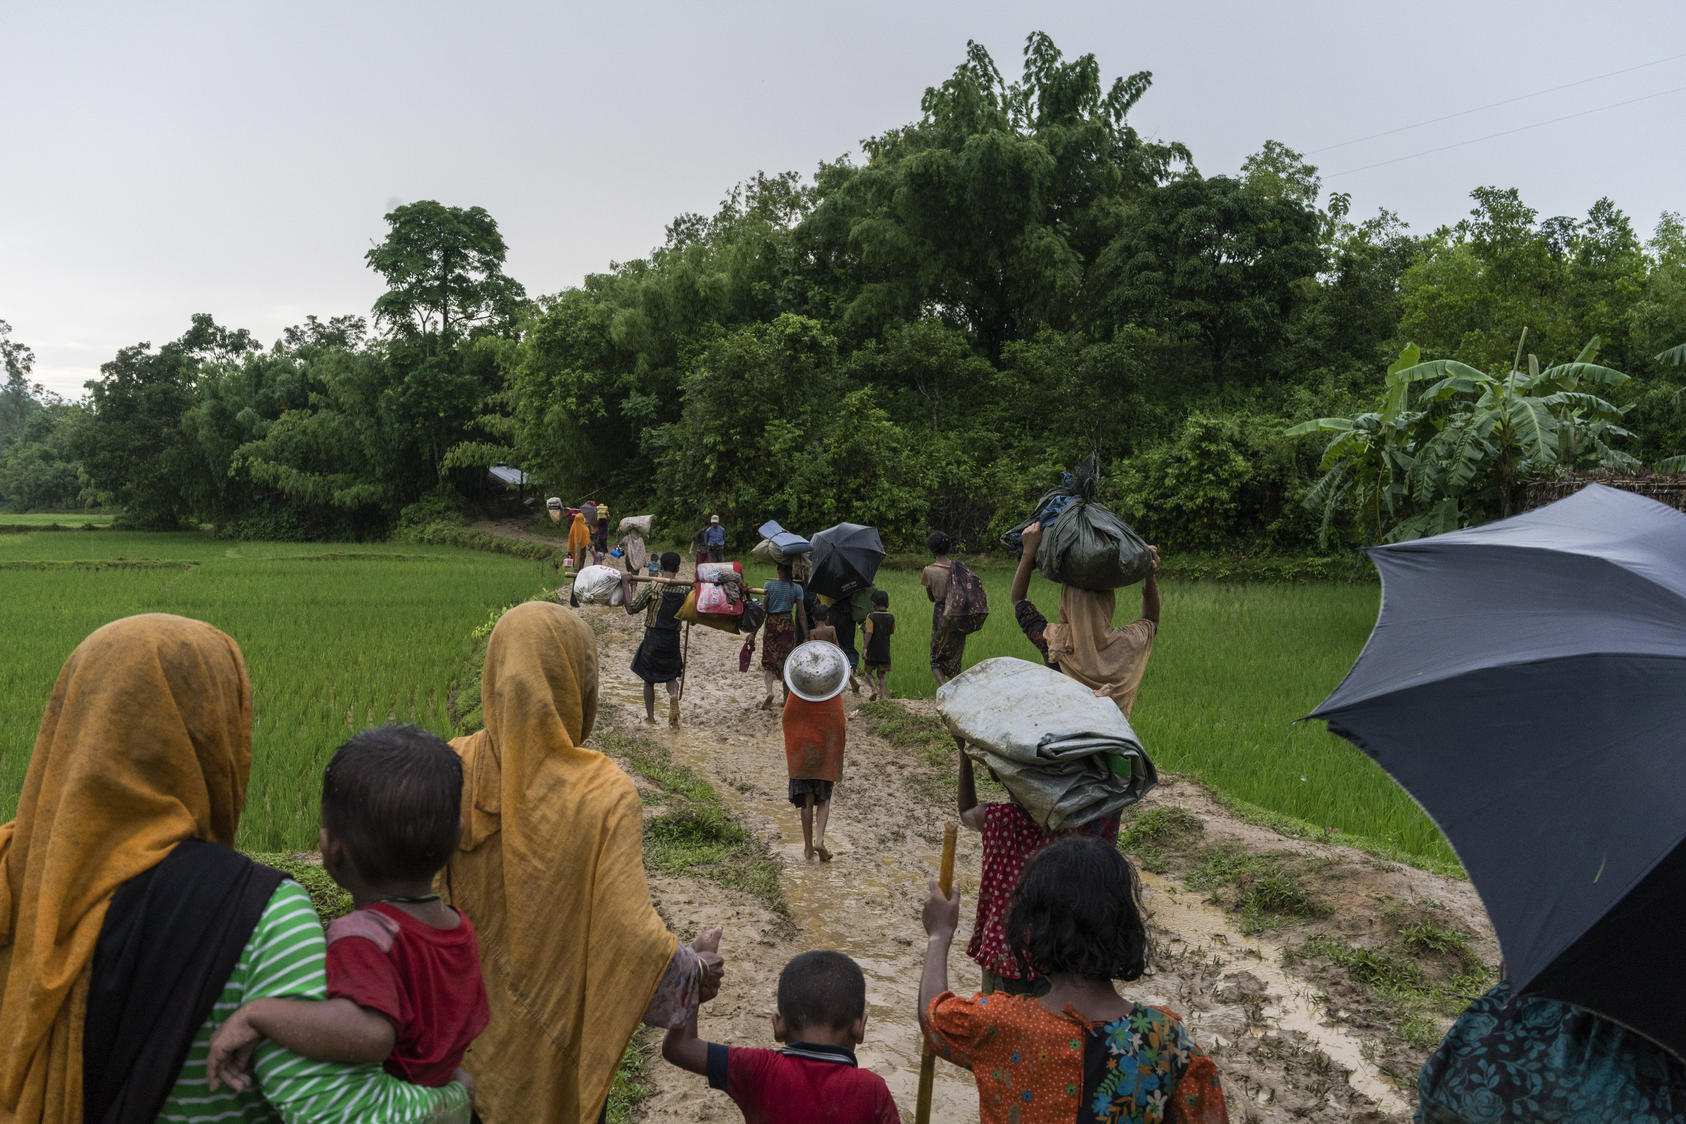 Rohingya refugees from Myanmar after crossing the border illegally near Amtoli, Bangladesh, Aug. 31, 2017. Bangladesh on Sept. 6 protested the huge influx of people fleeing violence in Myanmar and raised concerns with the Myanmar government about reports that its military was placing land mines along the countries' shared border. Photo Courtesy of The New York Times/ Adam Dean